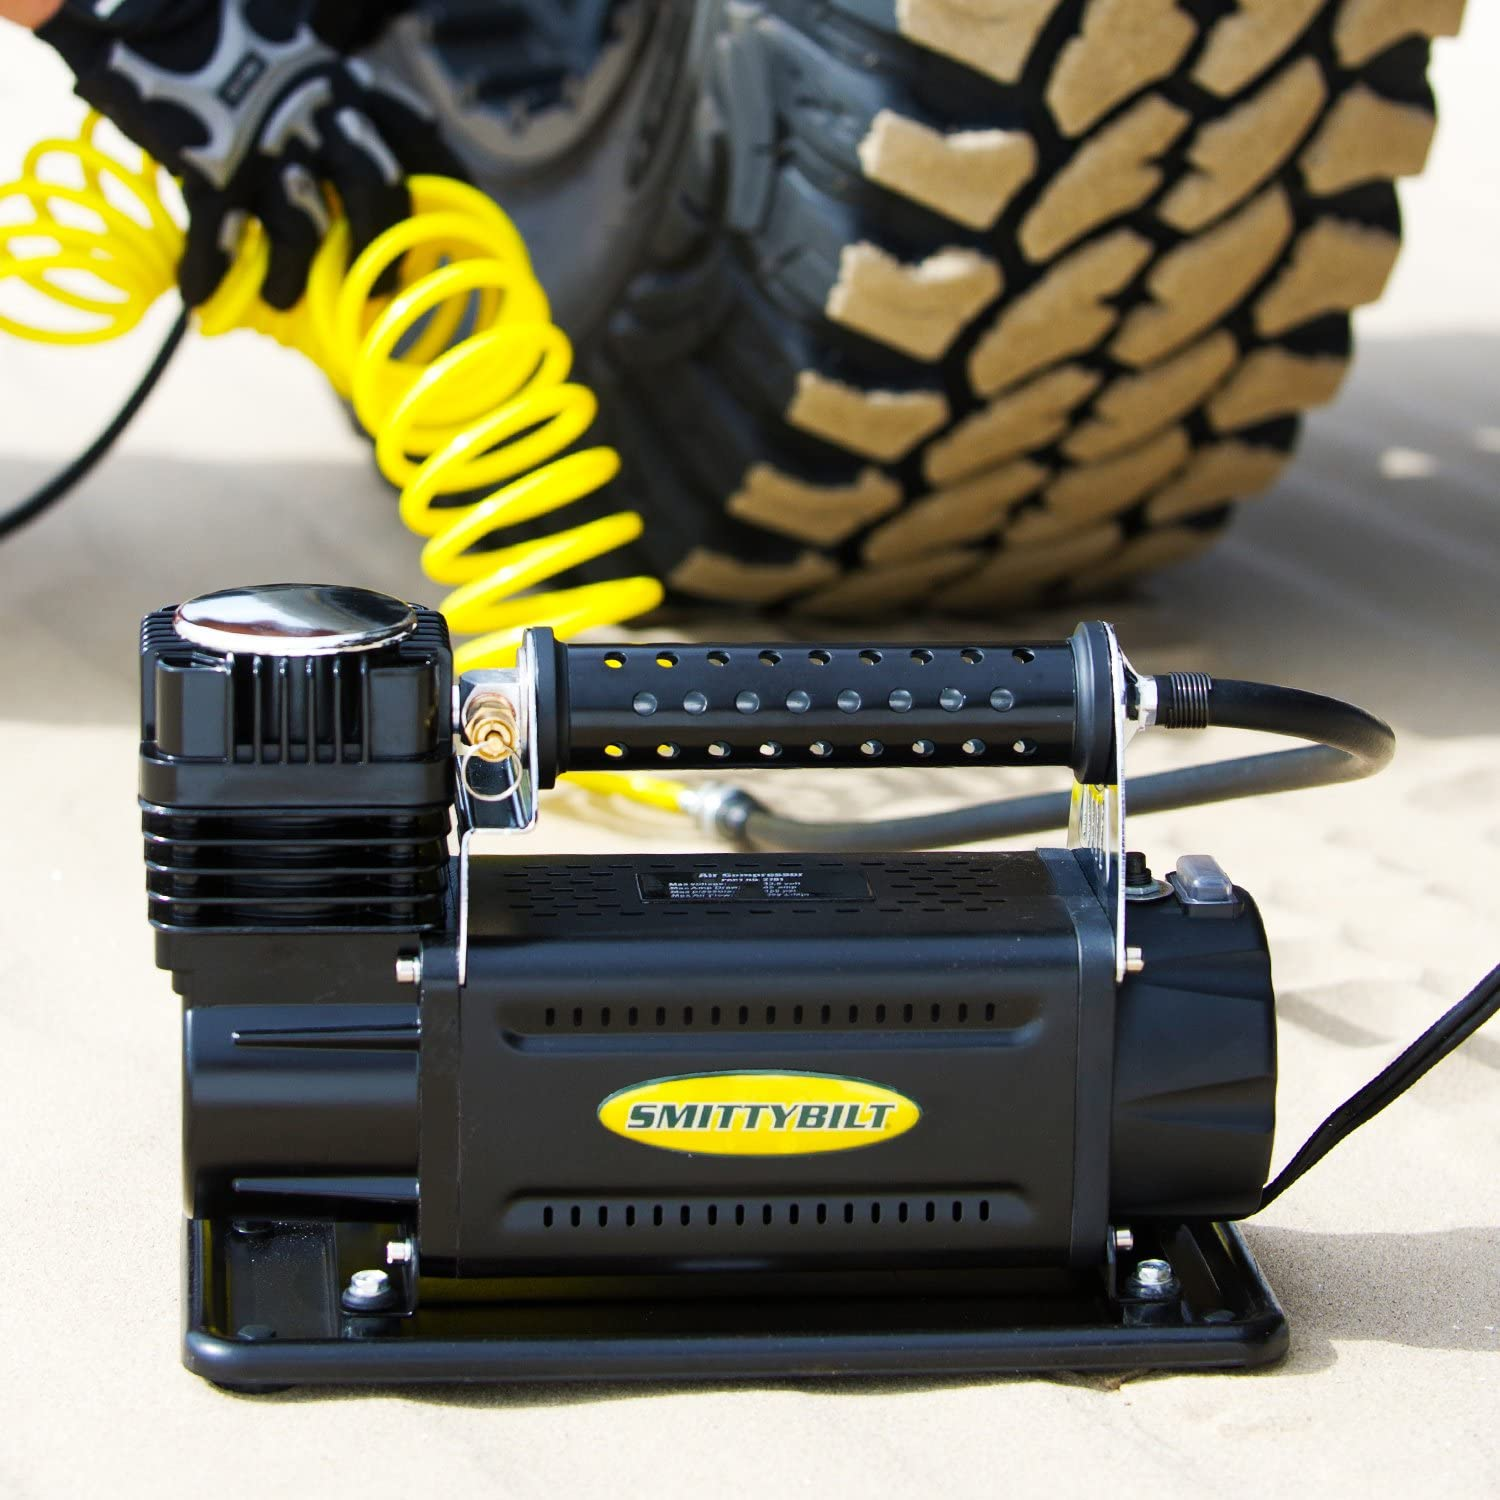 Smittybilt 2781 Air Compressor for Off-Road Vehicles